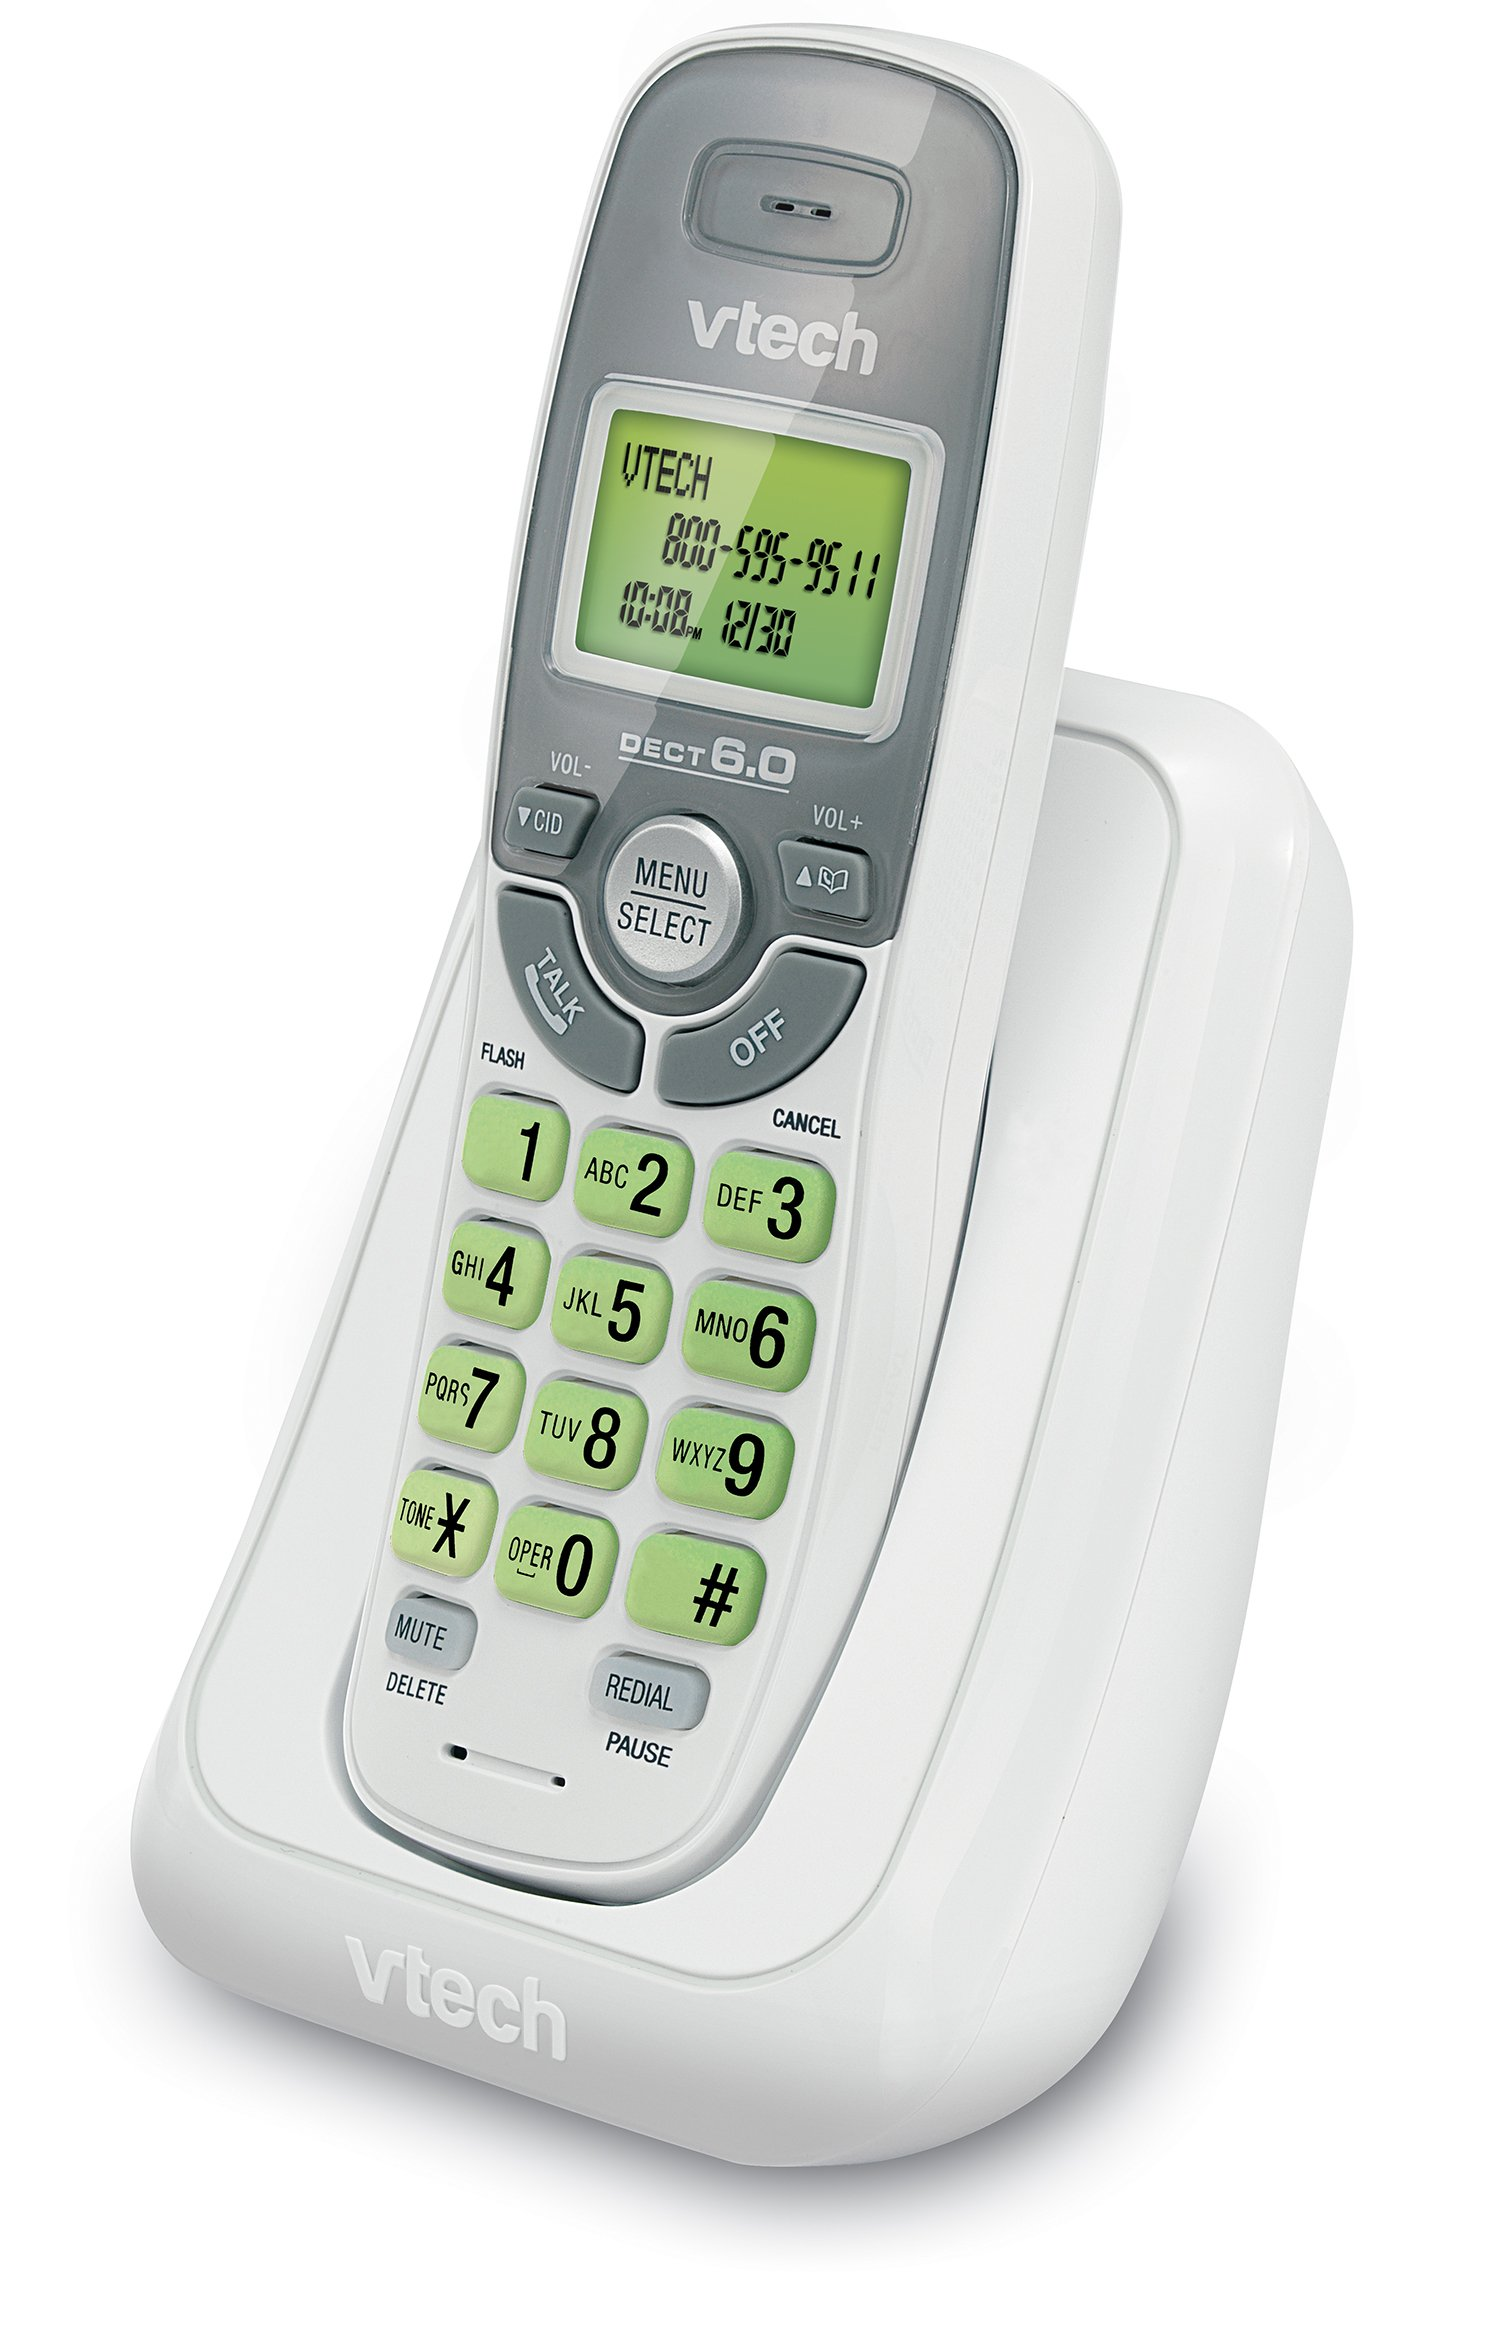 cordless home phone vtech handset dect 6 0 telephone w o answering caller system auctions buy. Black Bedroom Furniture Sets. Home Design Ideas